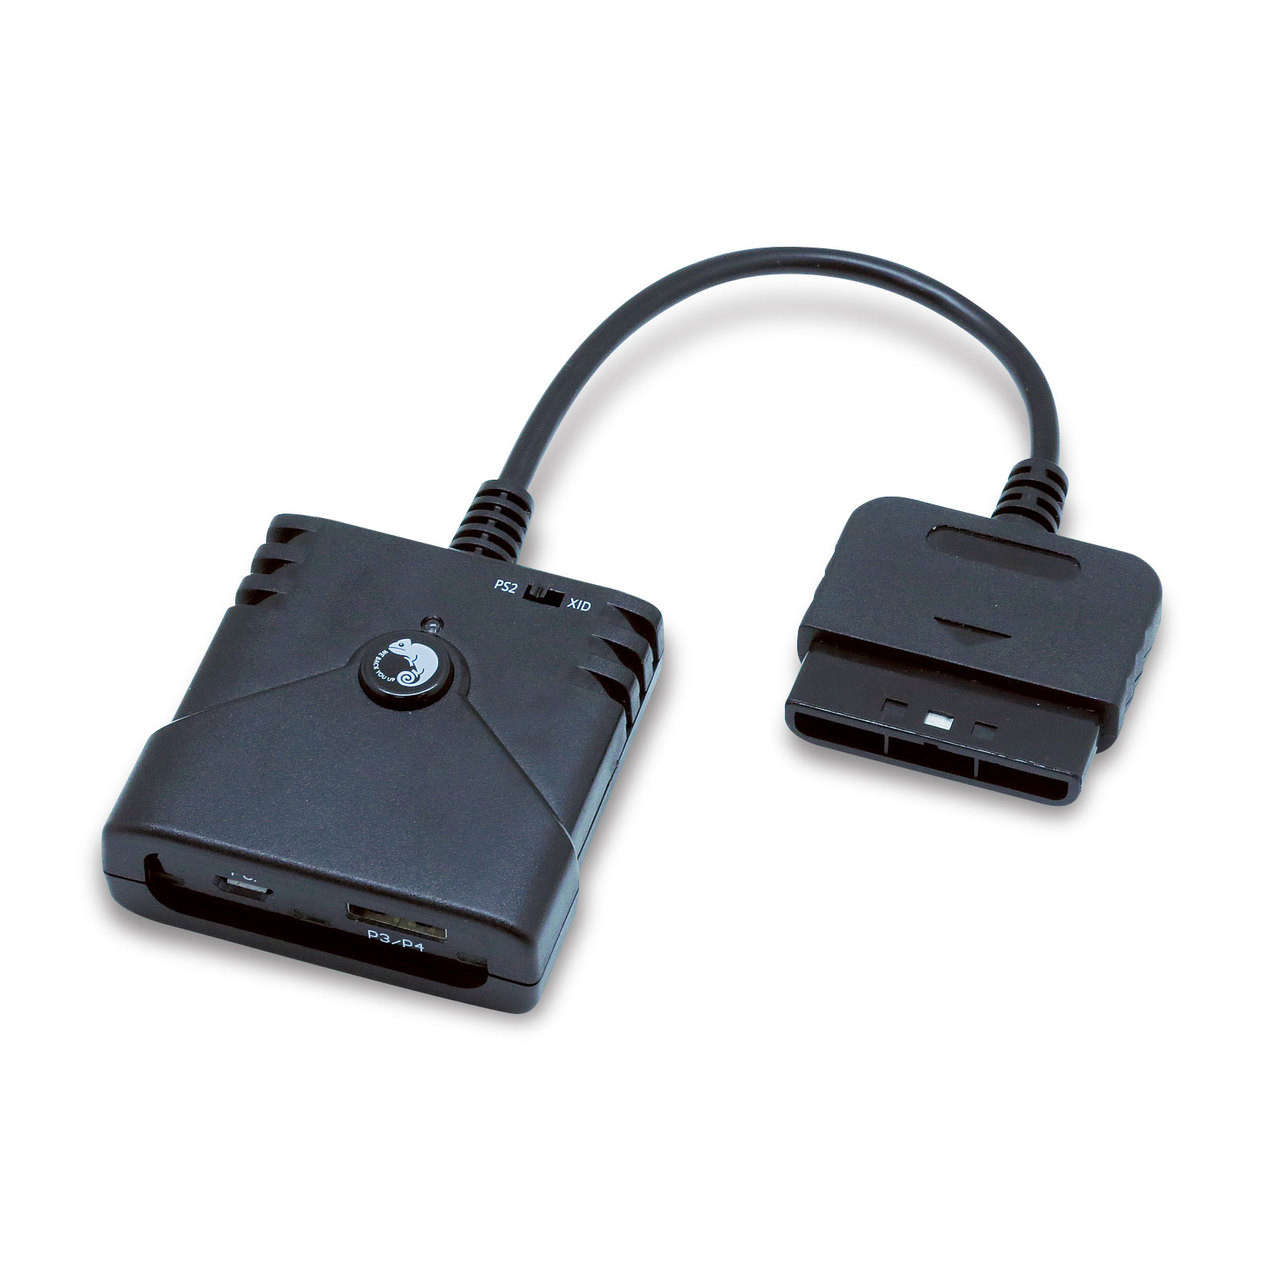 Brook Super Converter Ps3ps4 To Ps2ps1 Adapter. Wiring. Usb Wireless Ps3 Controller Wiring Diagram At Scoala.co